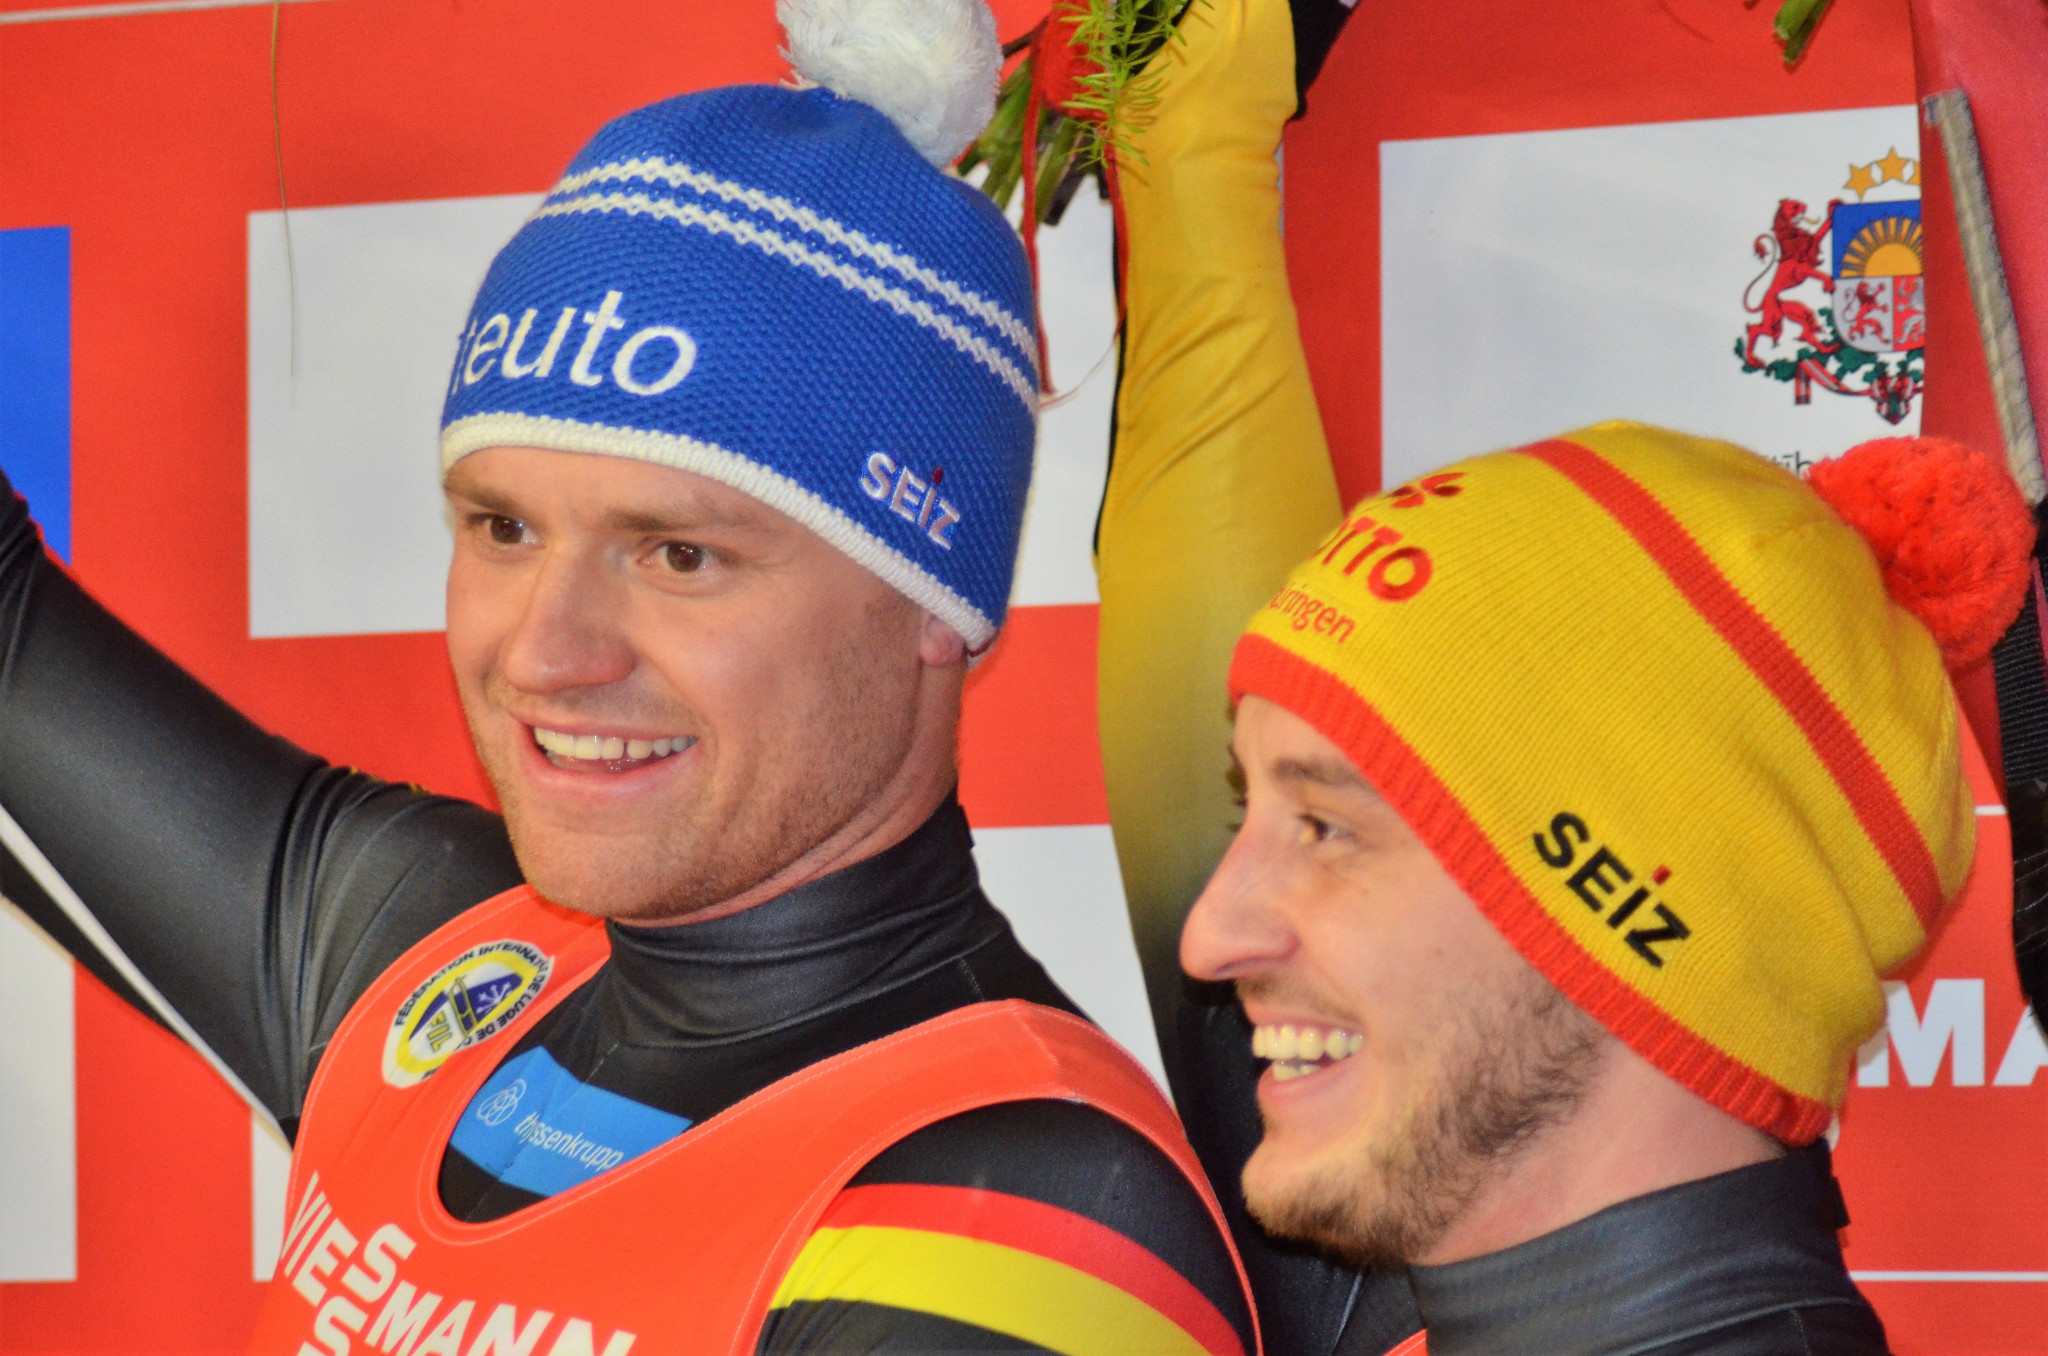 Germany's Toni Eggert and Sascha Benecken continued their dominance in the doubles competition at the FIL World Cup in Sigulda with their fourth consecutive victory this season ©FIL